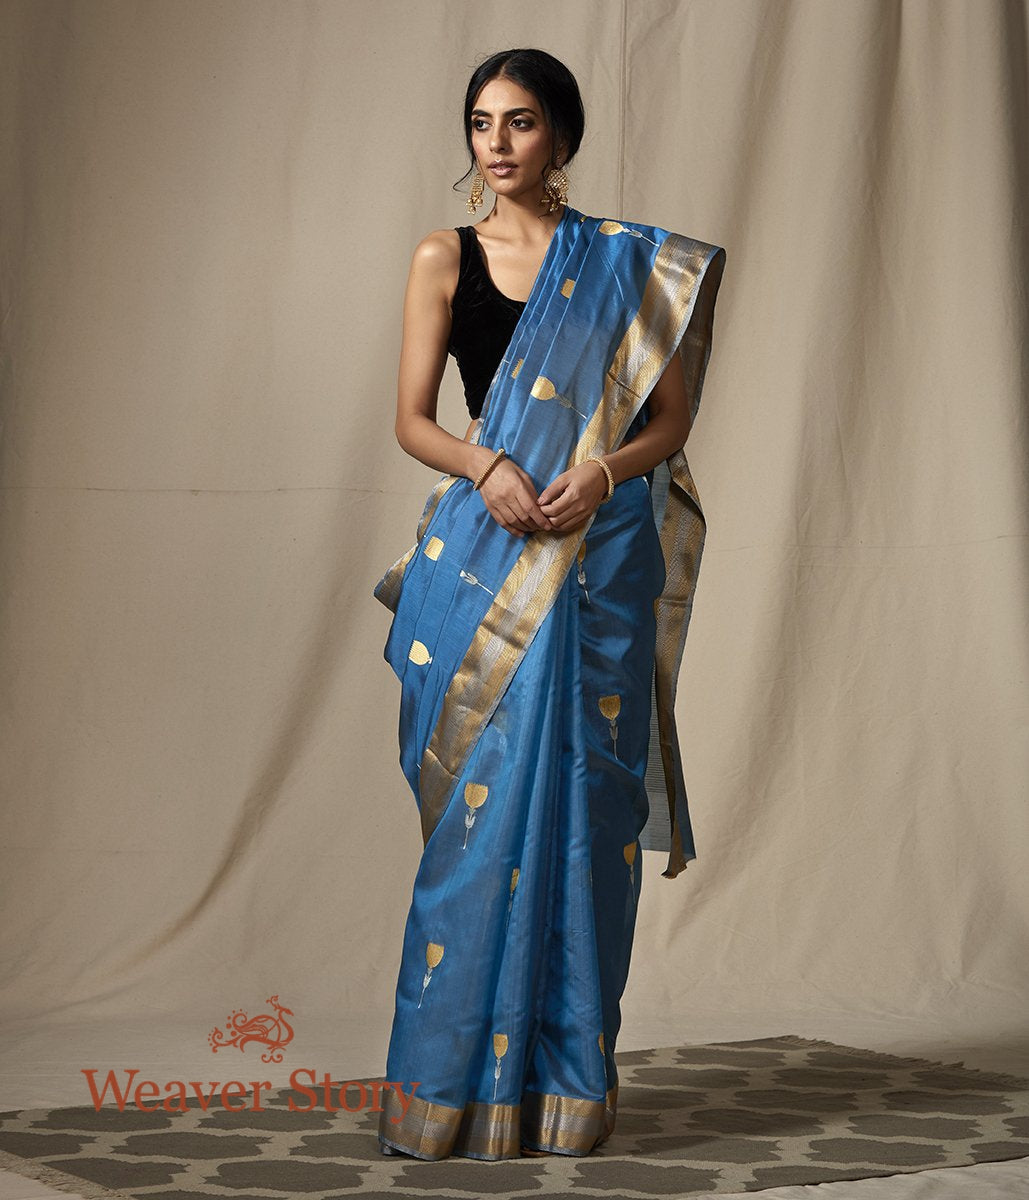 Blue Chanderi Silk Saree with Gold and Silver Zari Boota with Meenakari